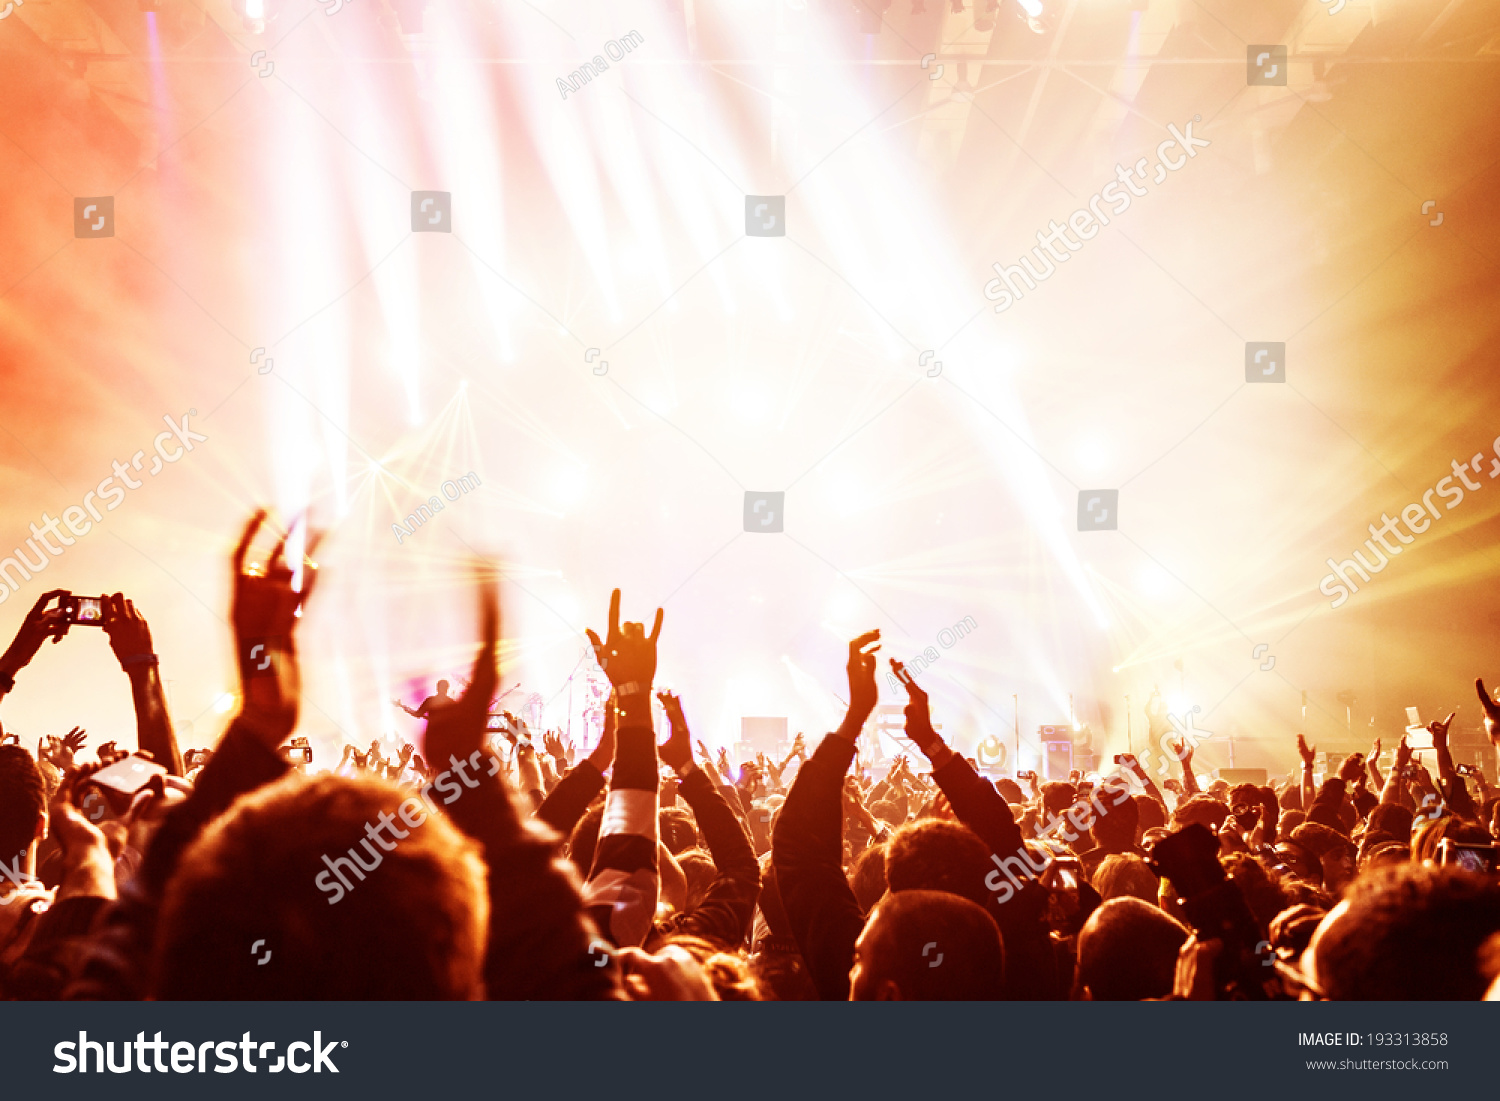 crowd enjoying concert happy people jumping stock photo 193313858 crowd enjoying concert happy people jumping large group celebrating new year holiday party